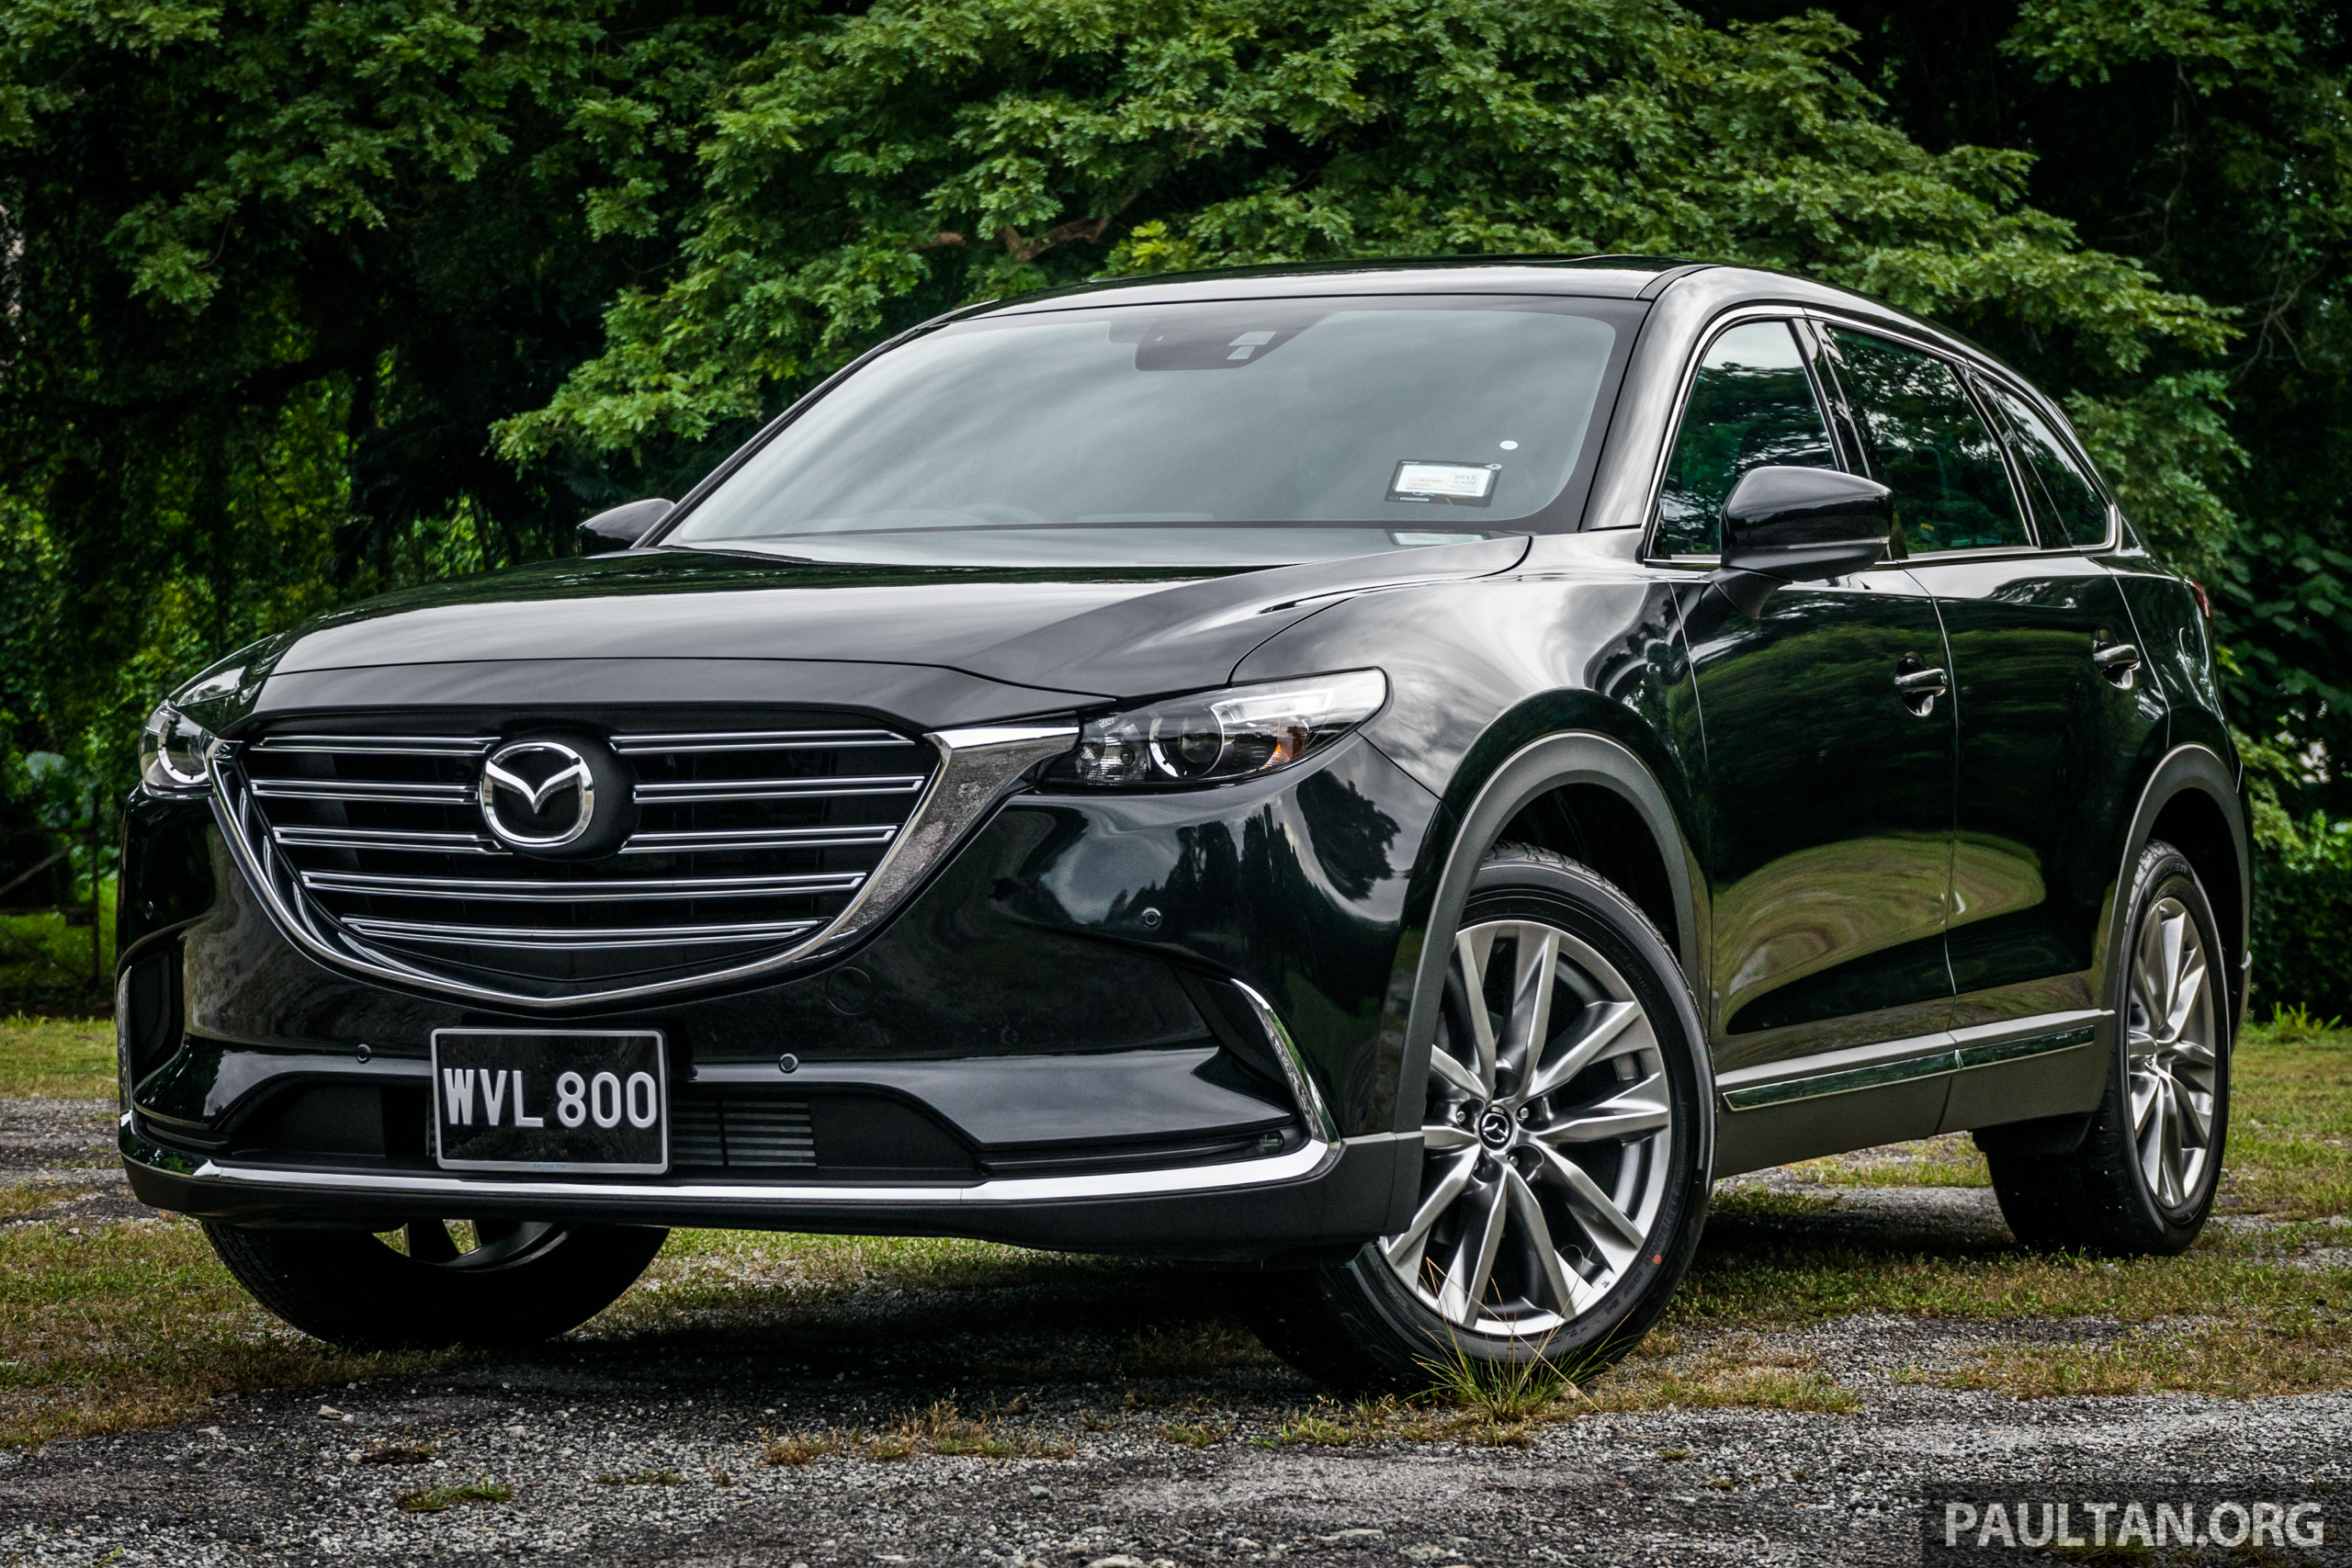 2017 mazda cx 9 2 5t now in malaysia from rm317k. Black Bedroom Furniture Sets. Home Design Ideas